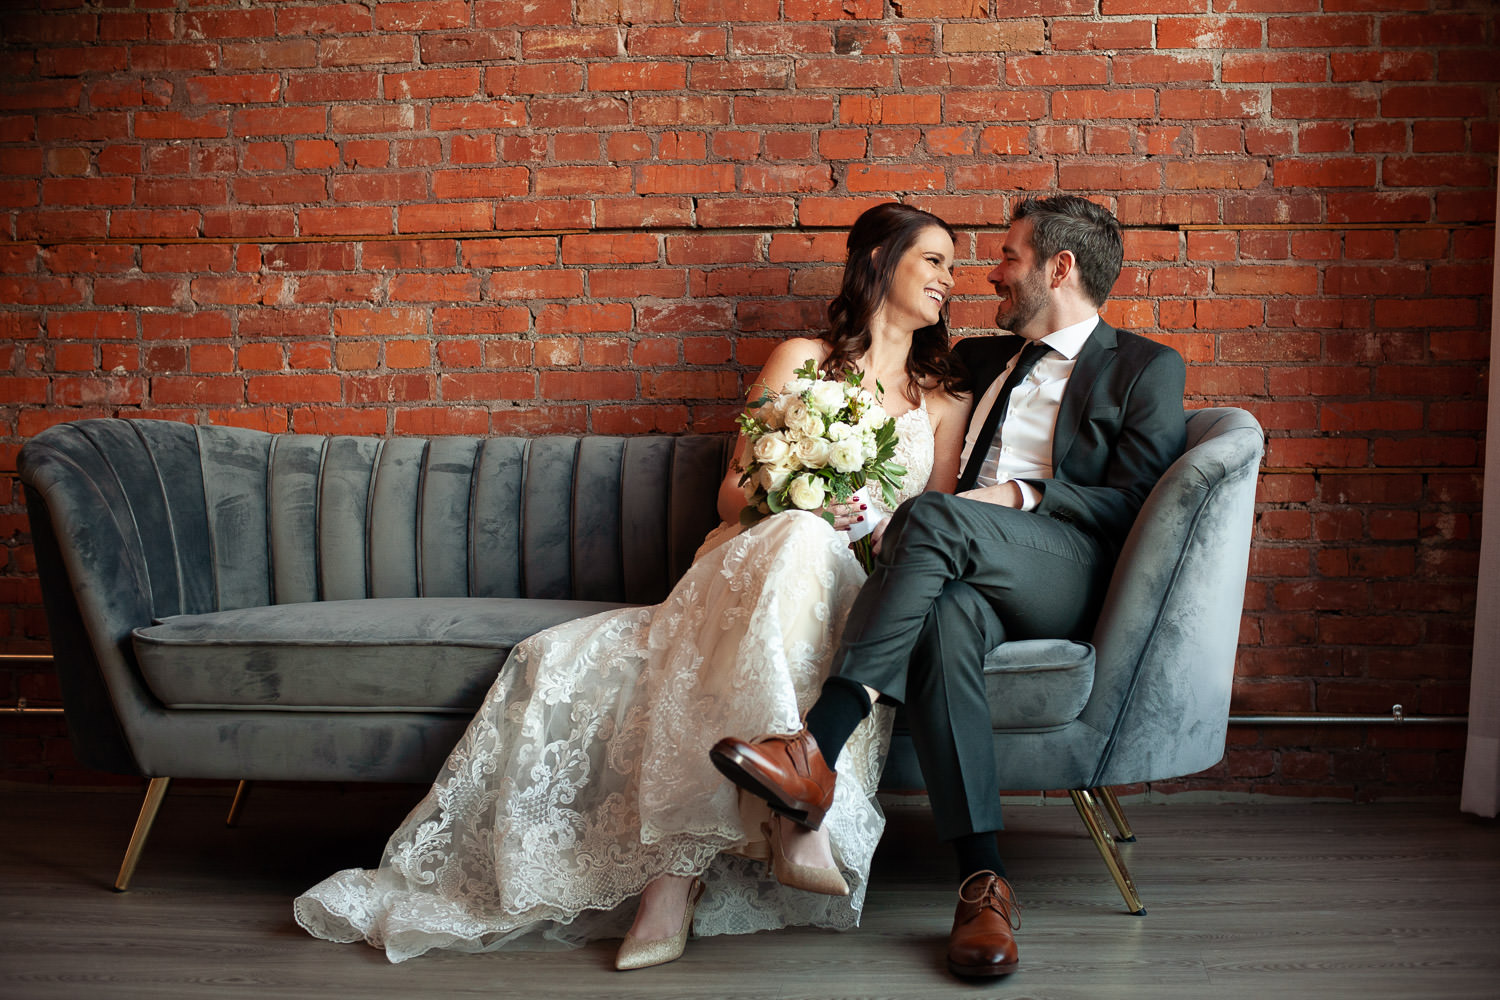 wedding portraits at Venue 308 captured by Tara Whittaker Photography